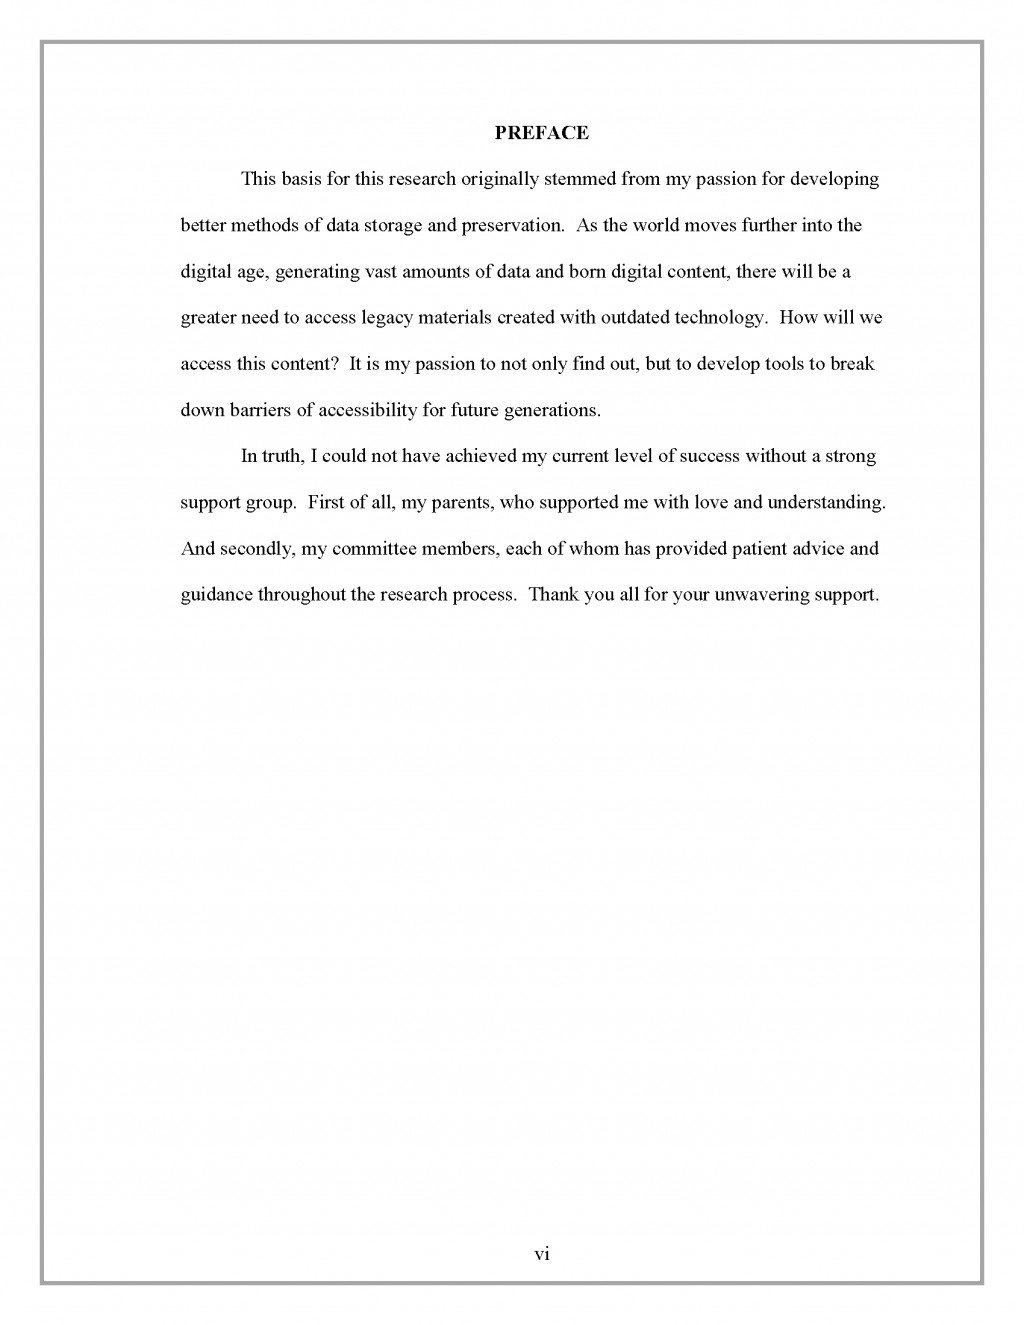 018 Thesis For Research Paper Preface Border Wonderful A Statement Generator Career On Schizophrenia Large